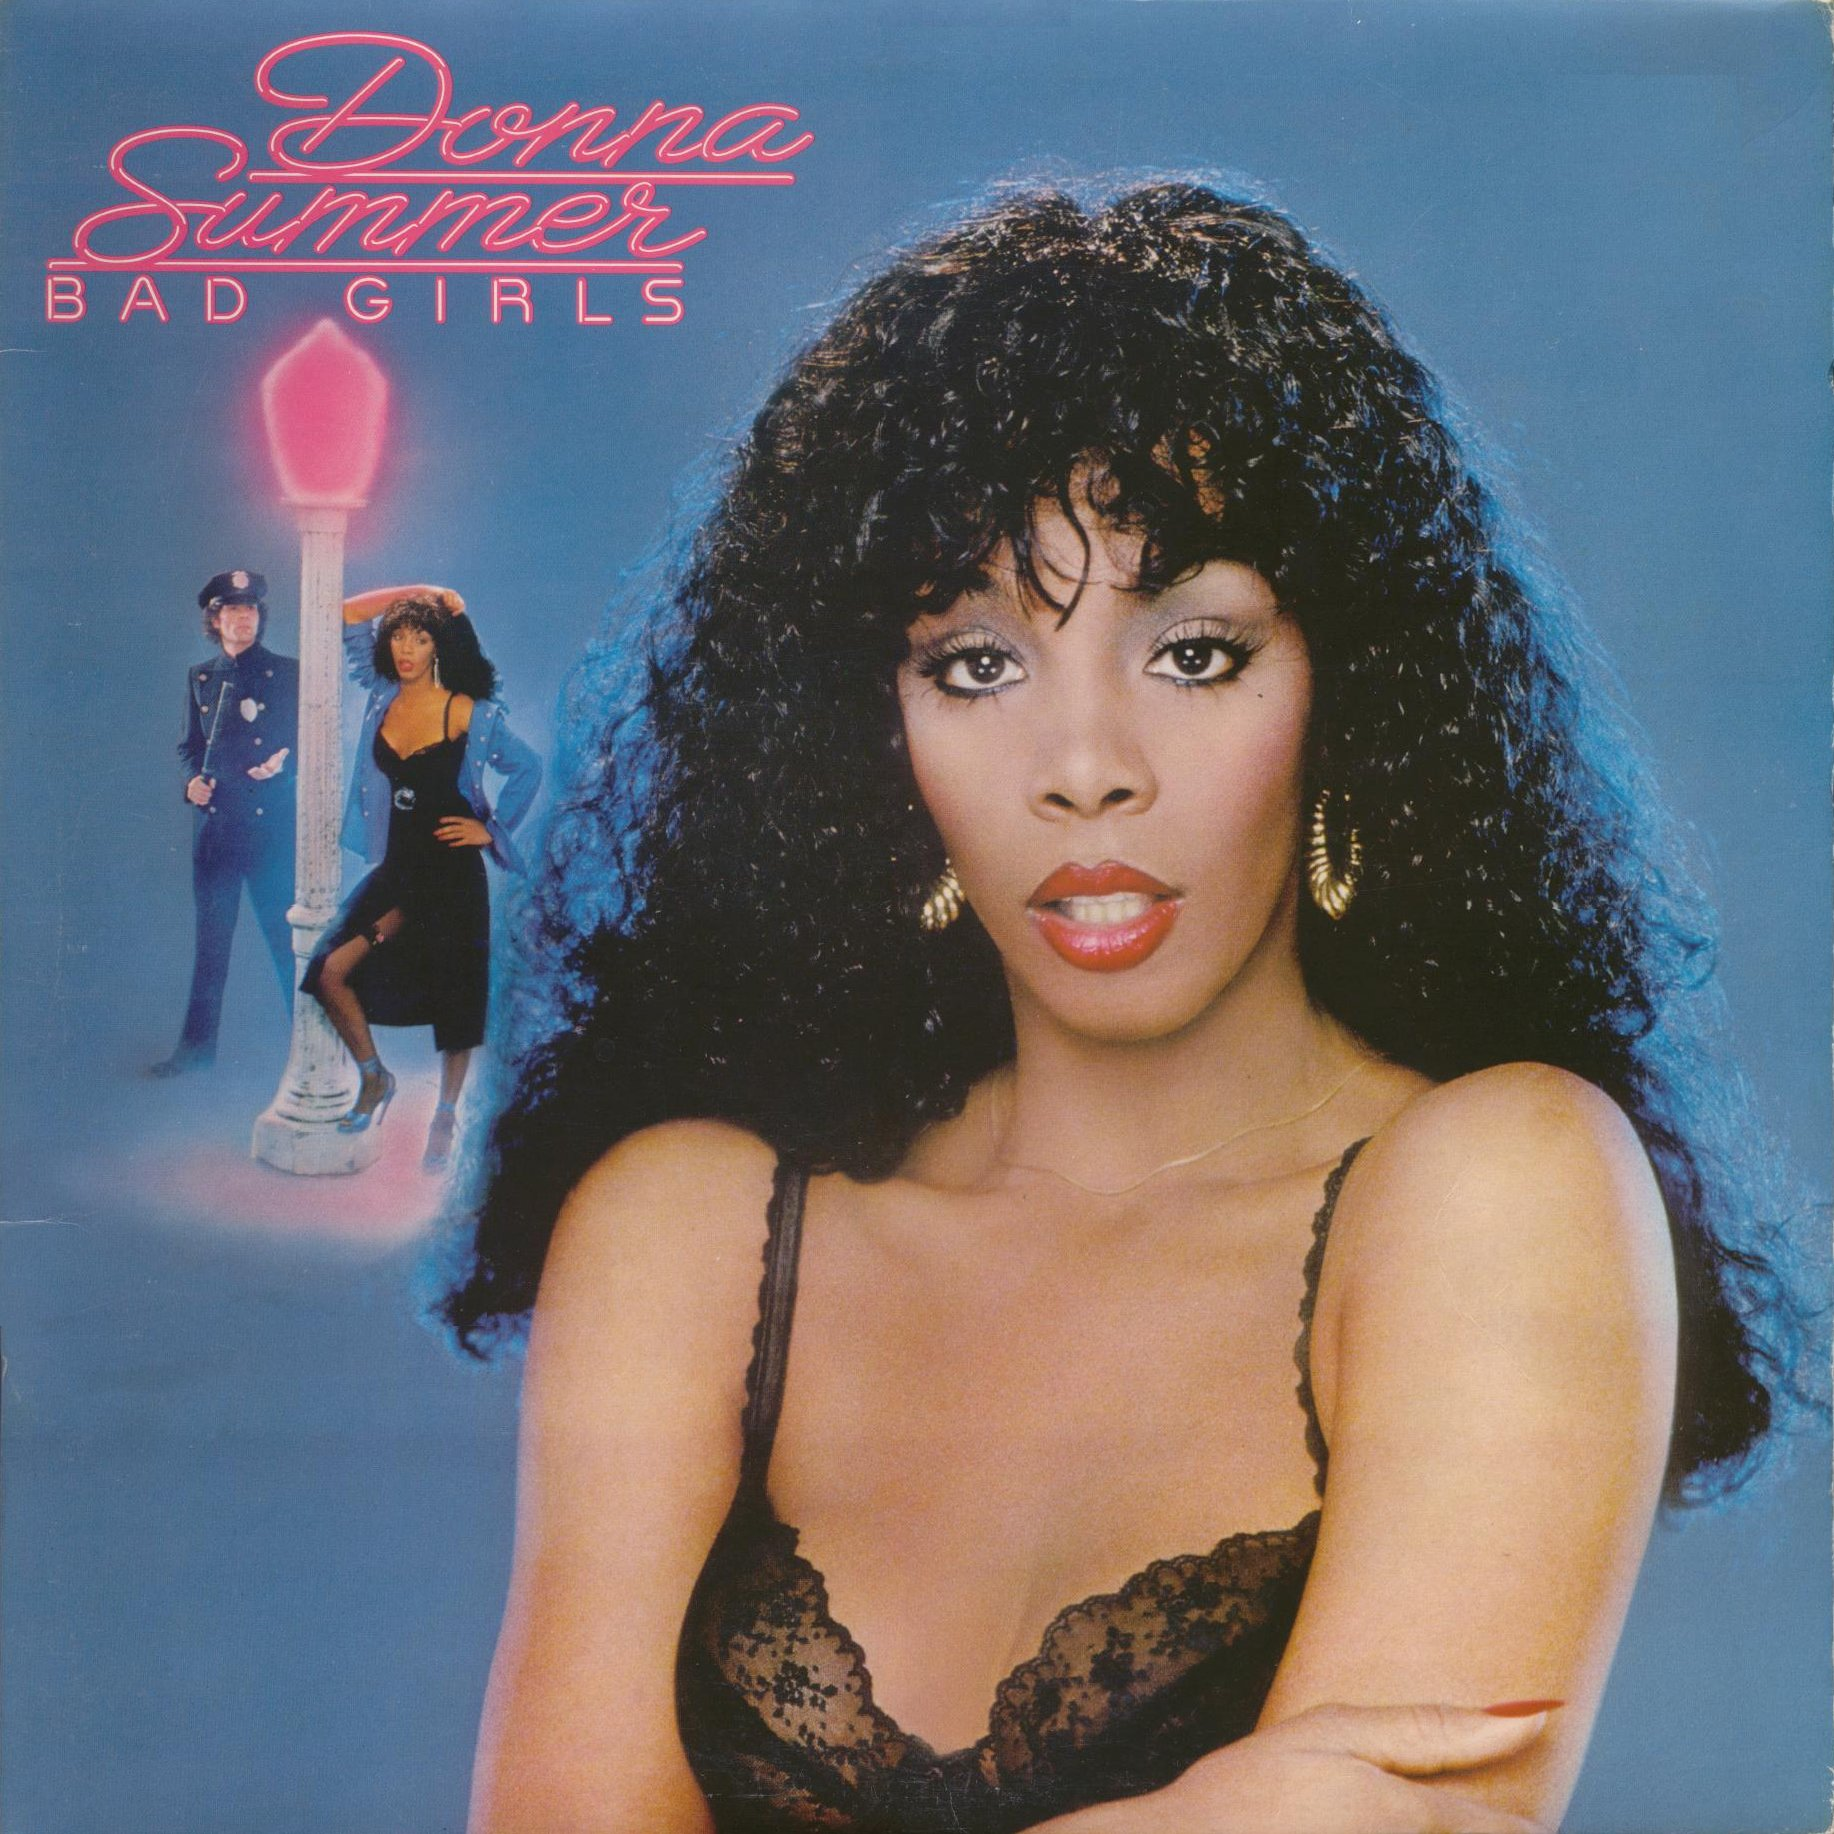 copertina_disco_donna_summer_bad_girls_1979